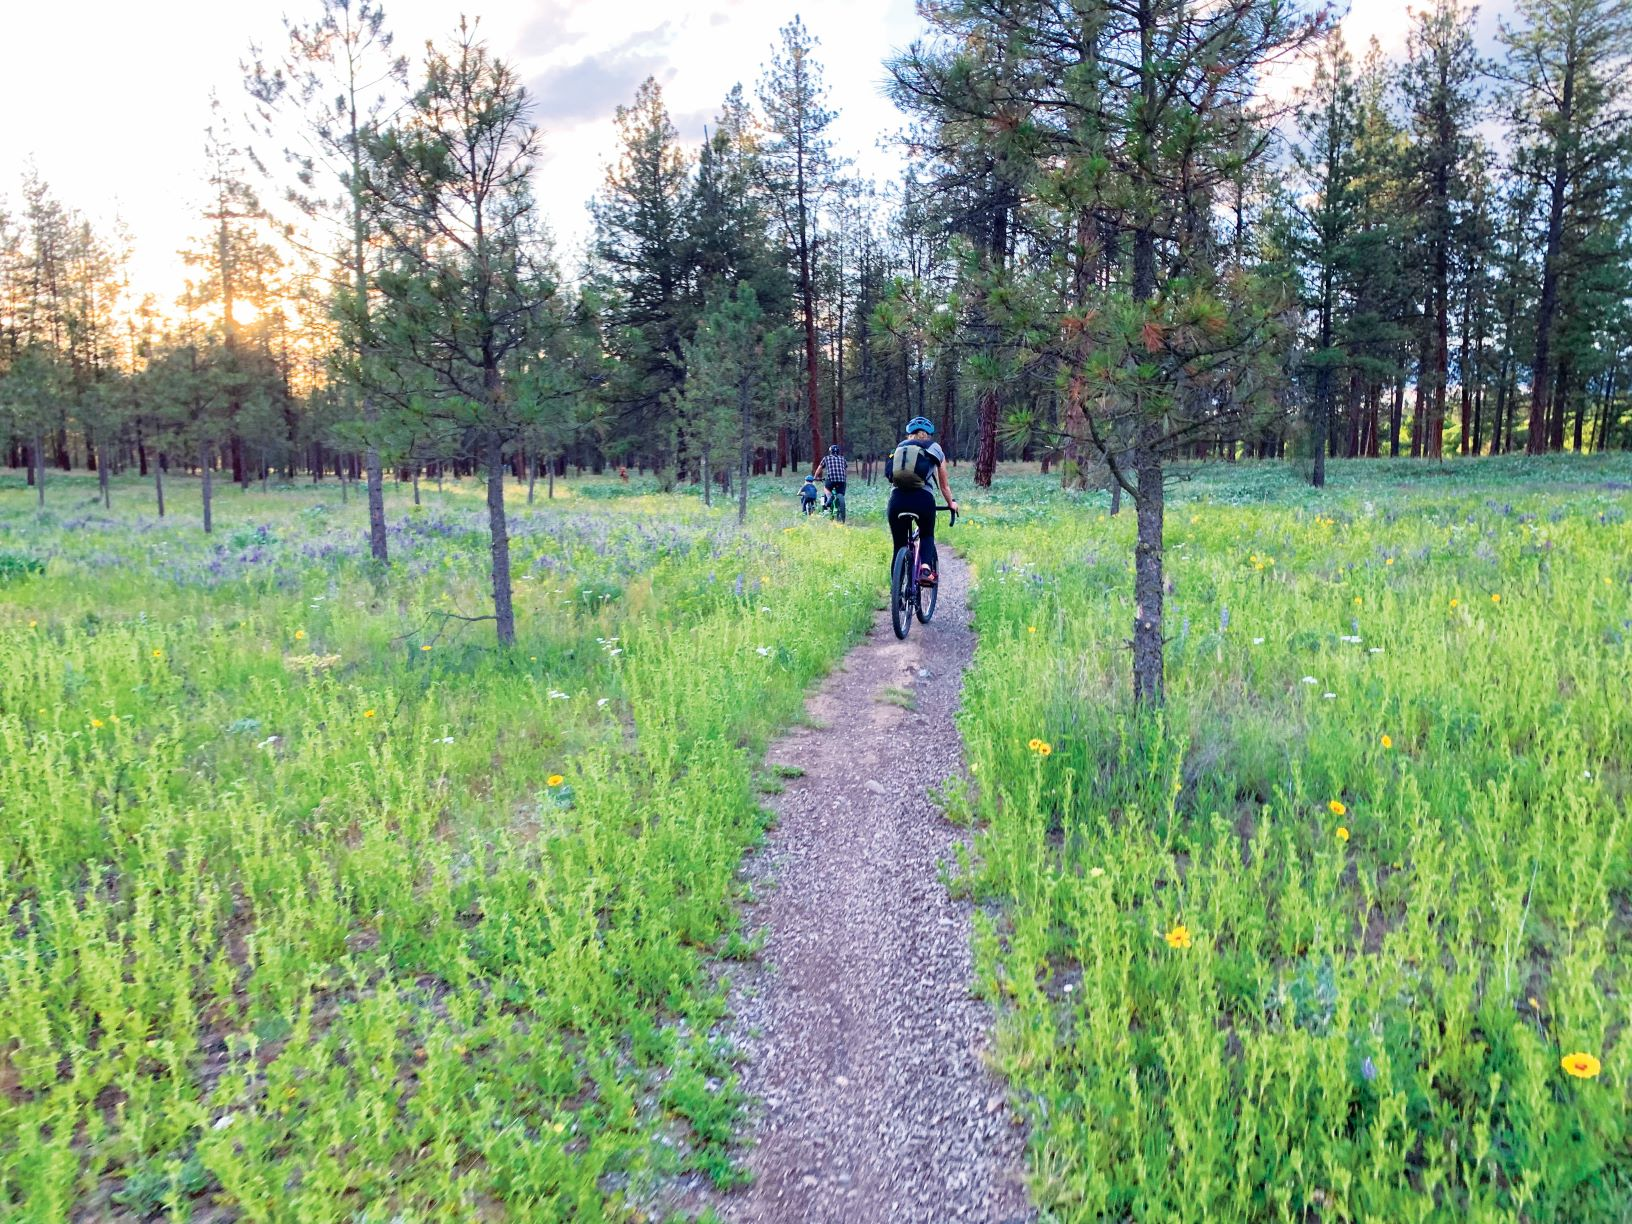 Riverside State Park - dirt trail through grassy meadow, heading towards treed area.